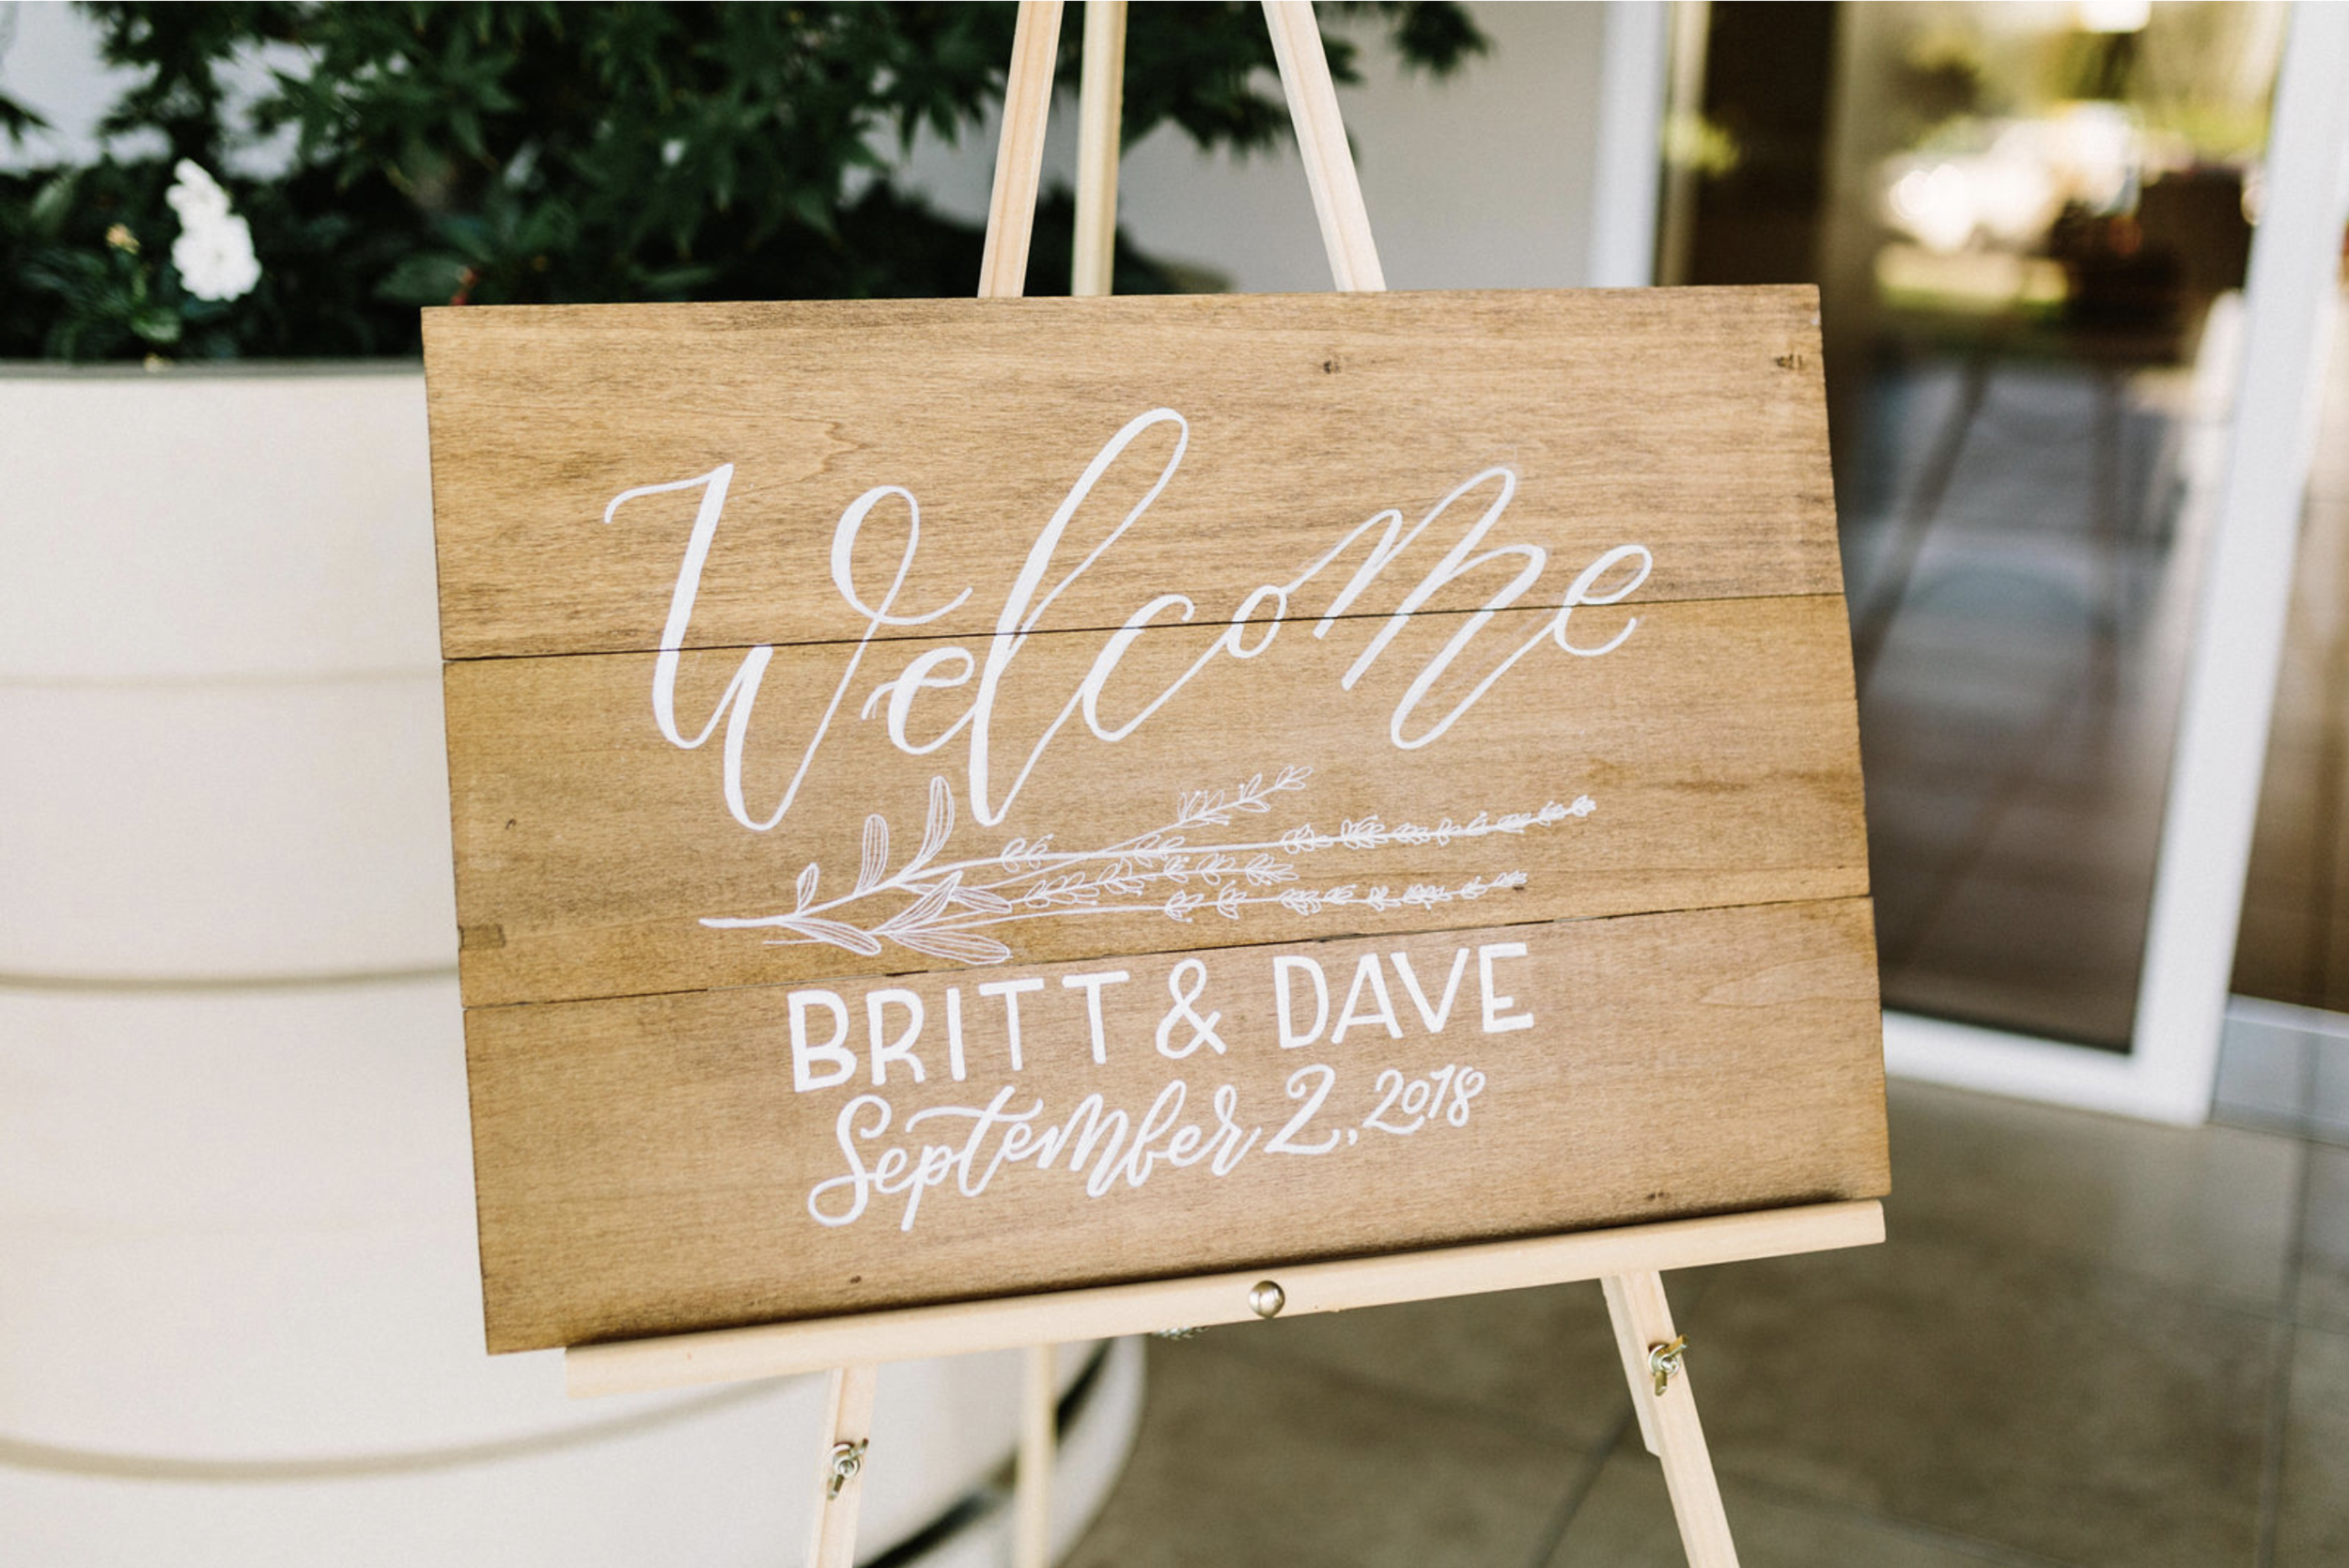 Wedding welcome sign, hand-lettered/hand-painted in calligraphy.